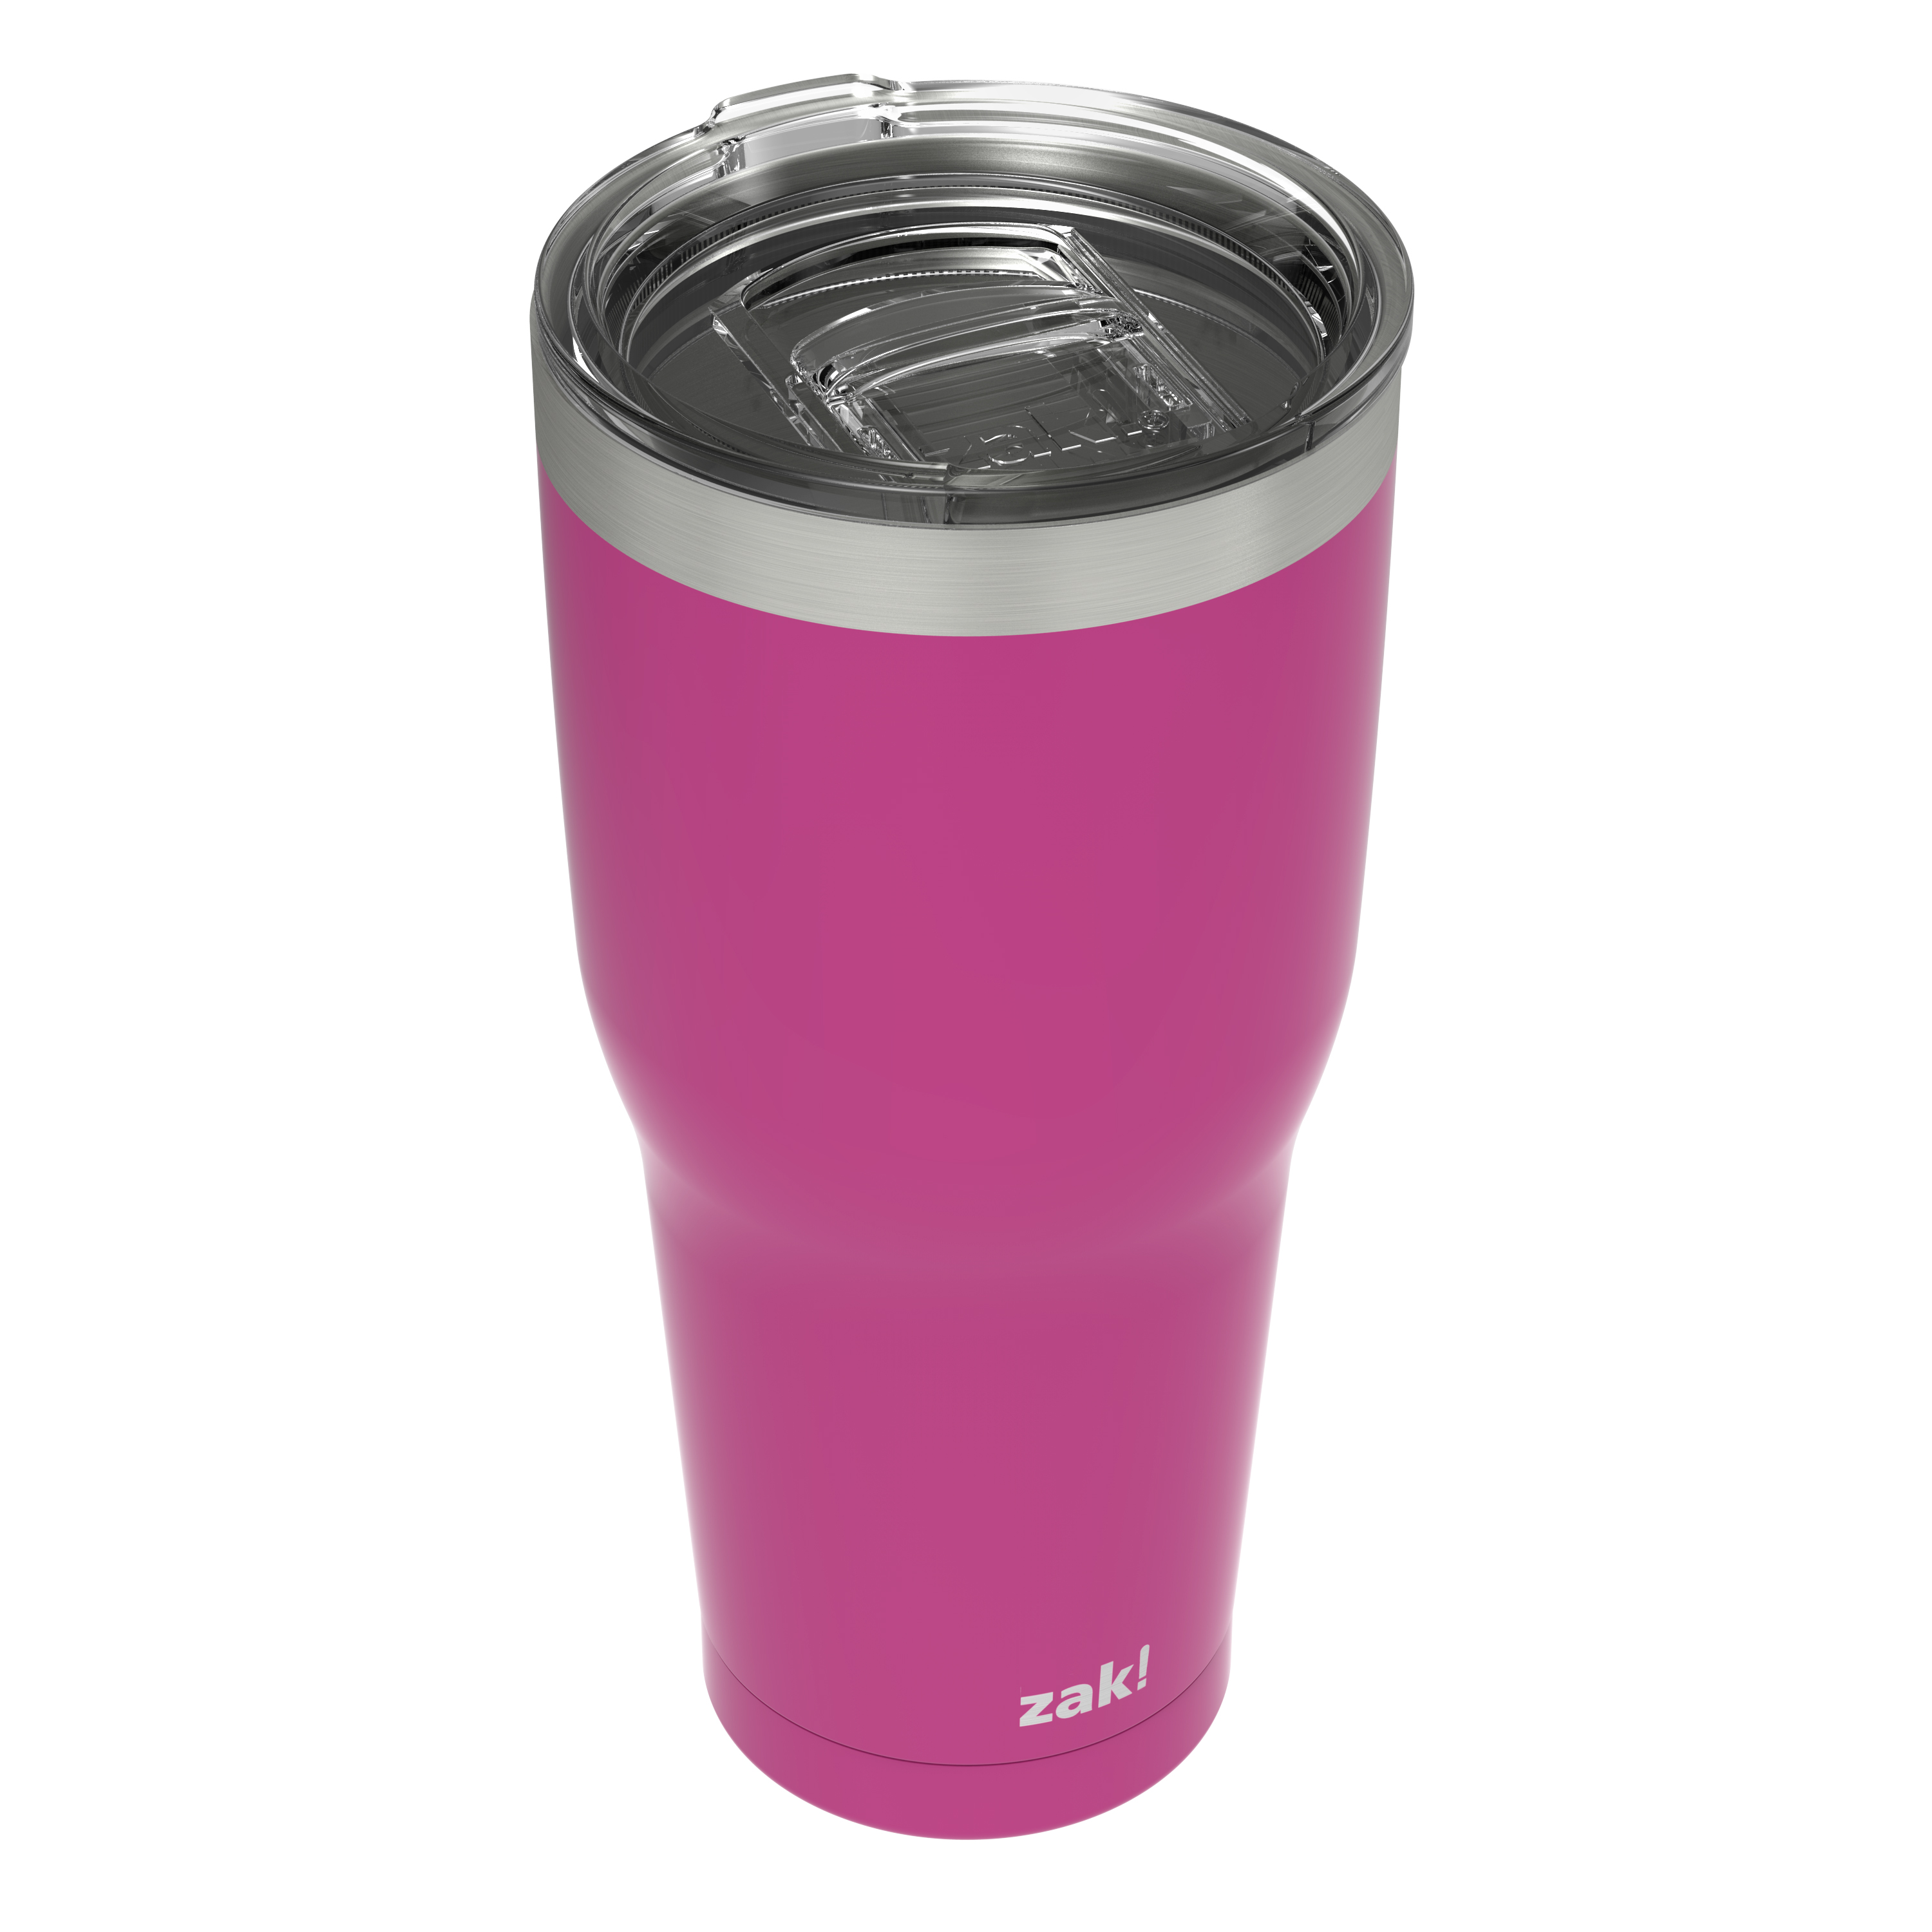 Zak Hydration 30 ounce Vacuum Insulated Stainless Steel Tumbler, Peony slideshow image 3